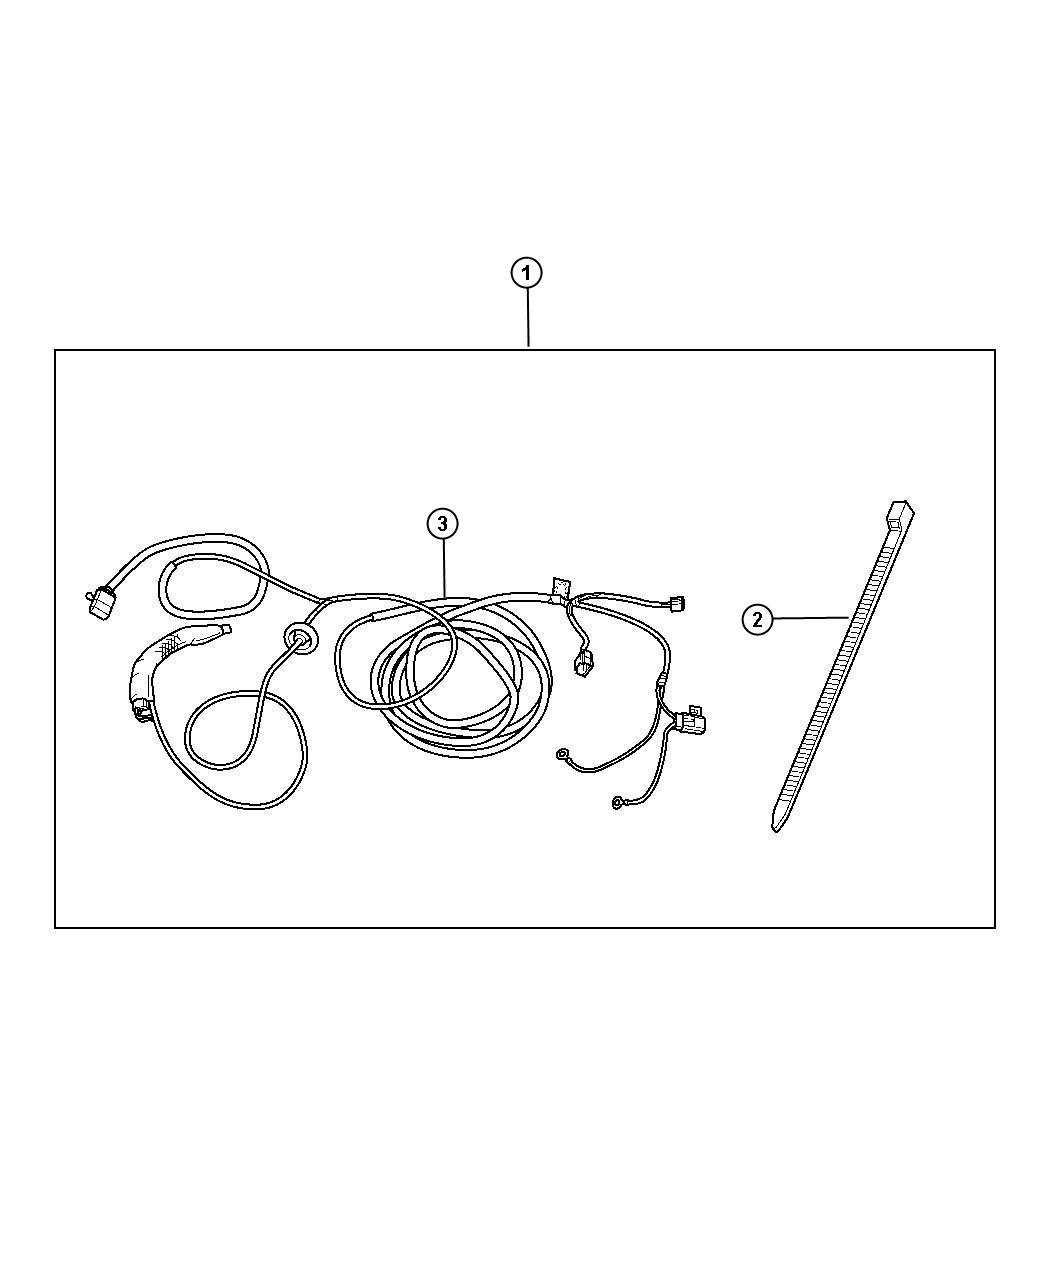 Jeep Patriot Trailer Tow Wiring Harness Kit, with four-way